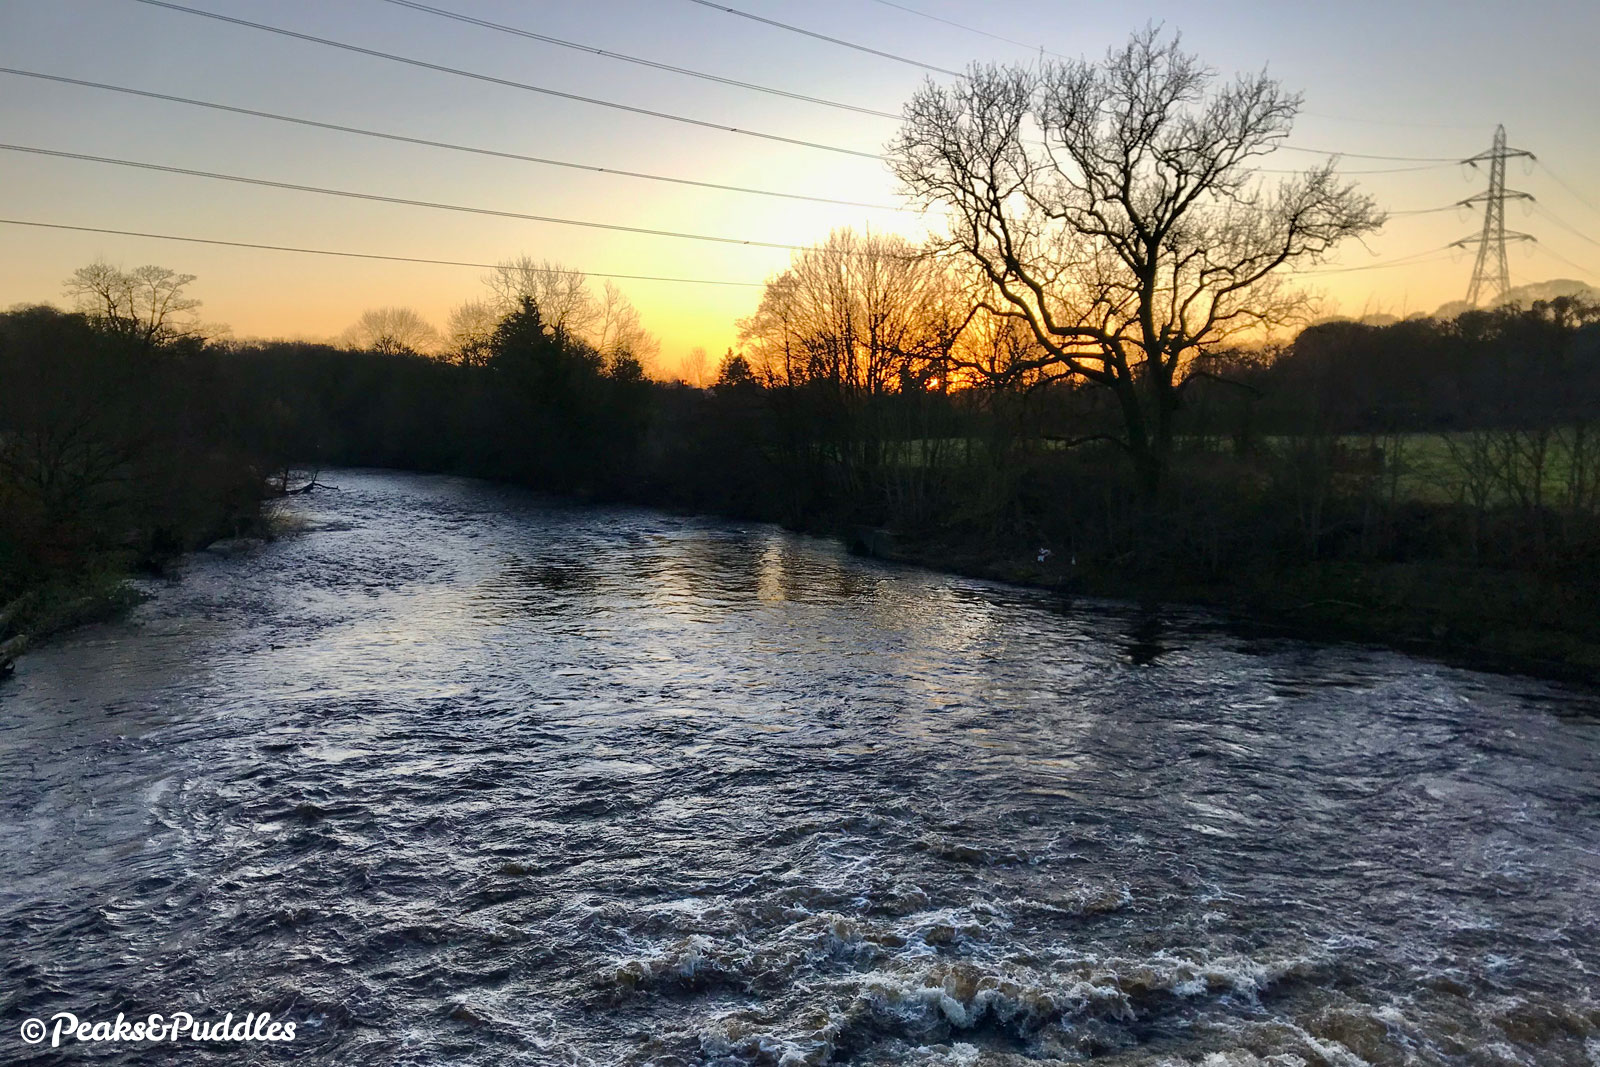 A raging winter evening over the River Goyt, almost unrecognisable from its meagre start near Whaley Bridge.